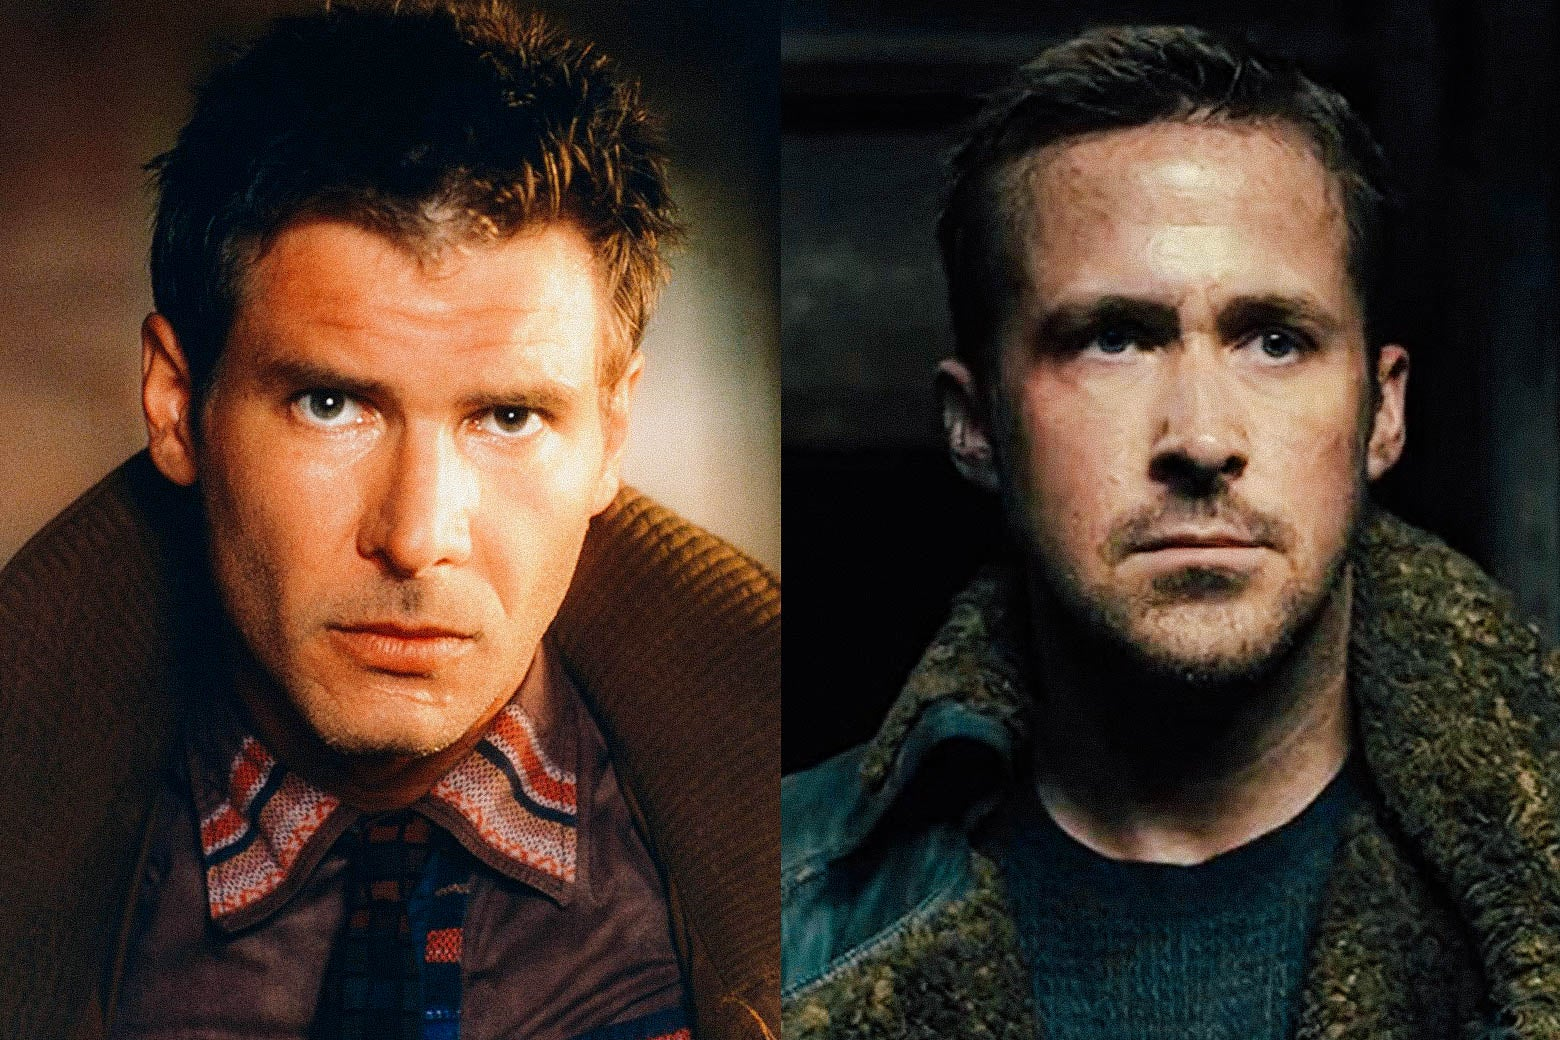 Side by side photos of Harrison Ford and Ryan Gosling in their respective Blade Runner roles.